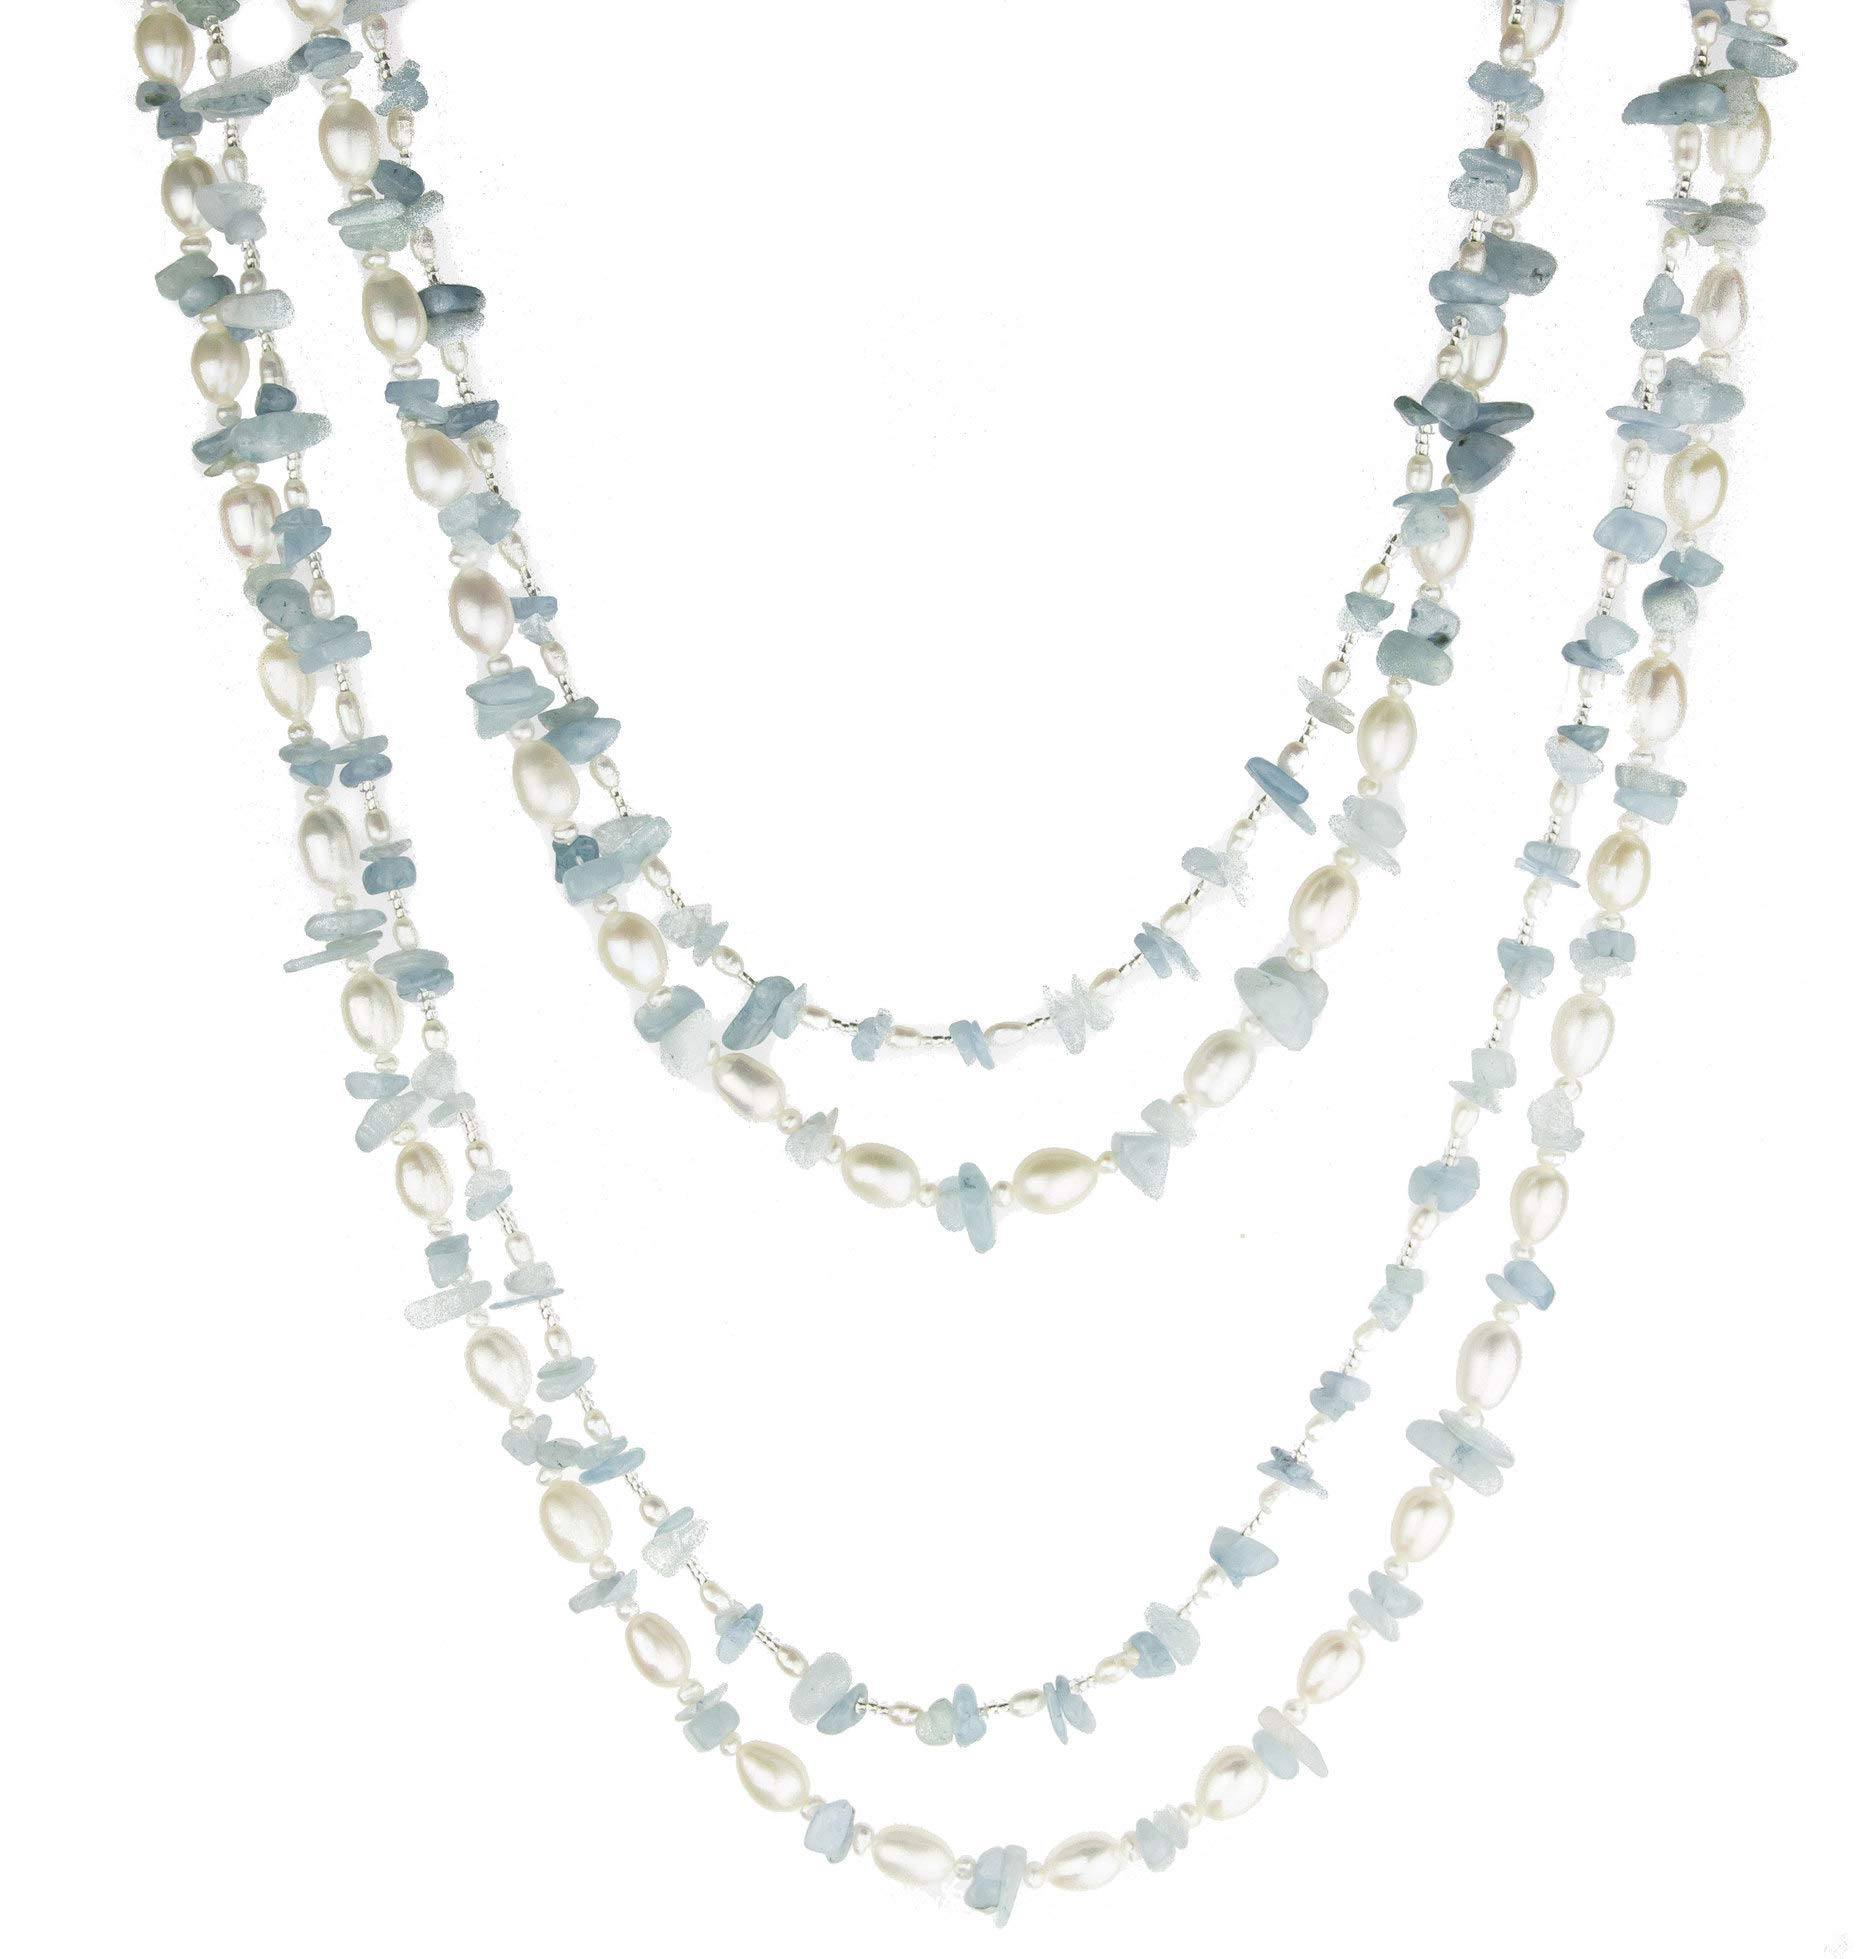 HinsonGayle 'Sky' 2-Strand Freshwater Cultured Pearl & Aquamarine Necklace & Dangle Earrings-40 in length by HinsonGayle Fine Pearl Jewelry (Image #1)